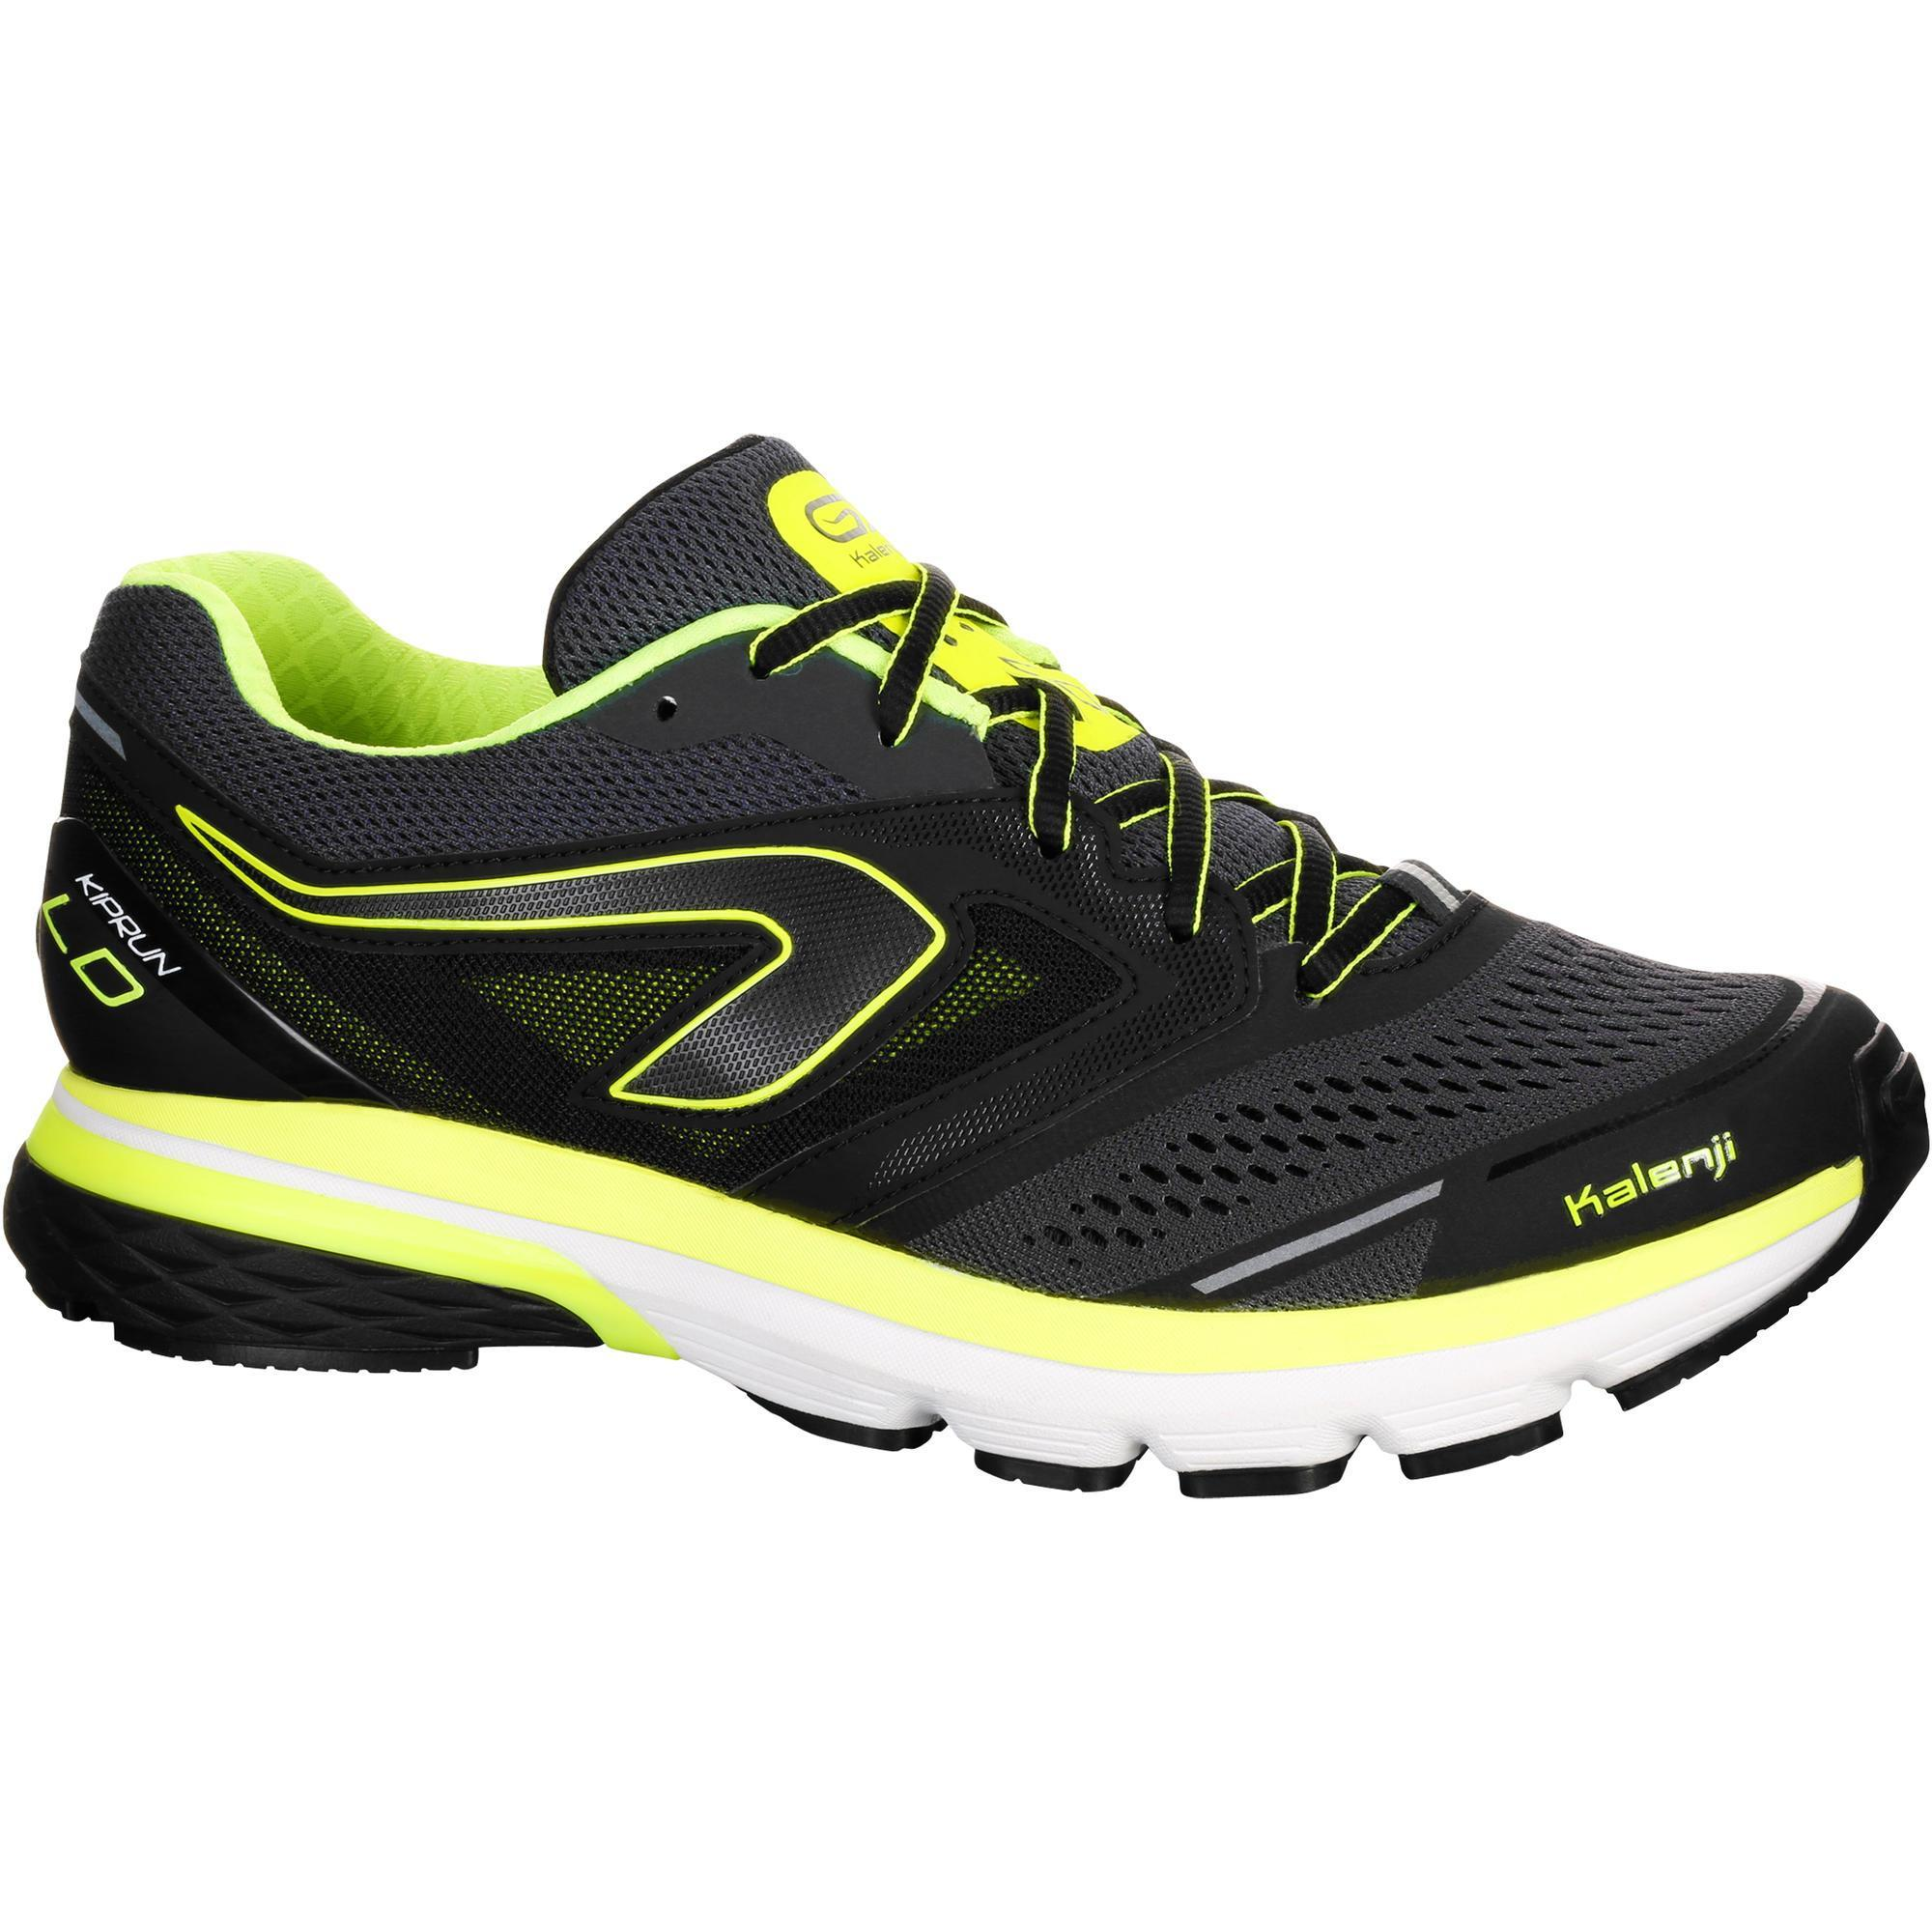 Decathlon Kalenji Running Shoes